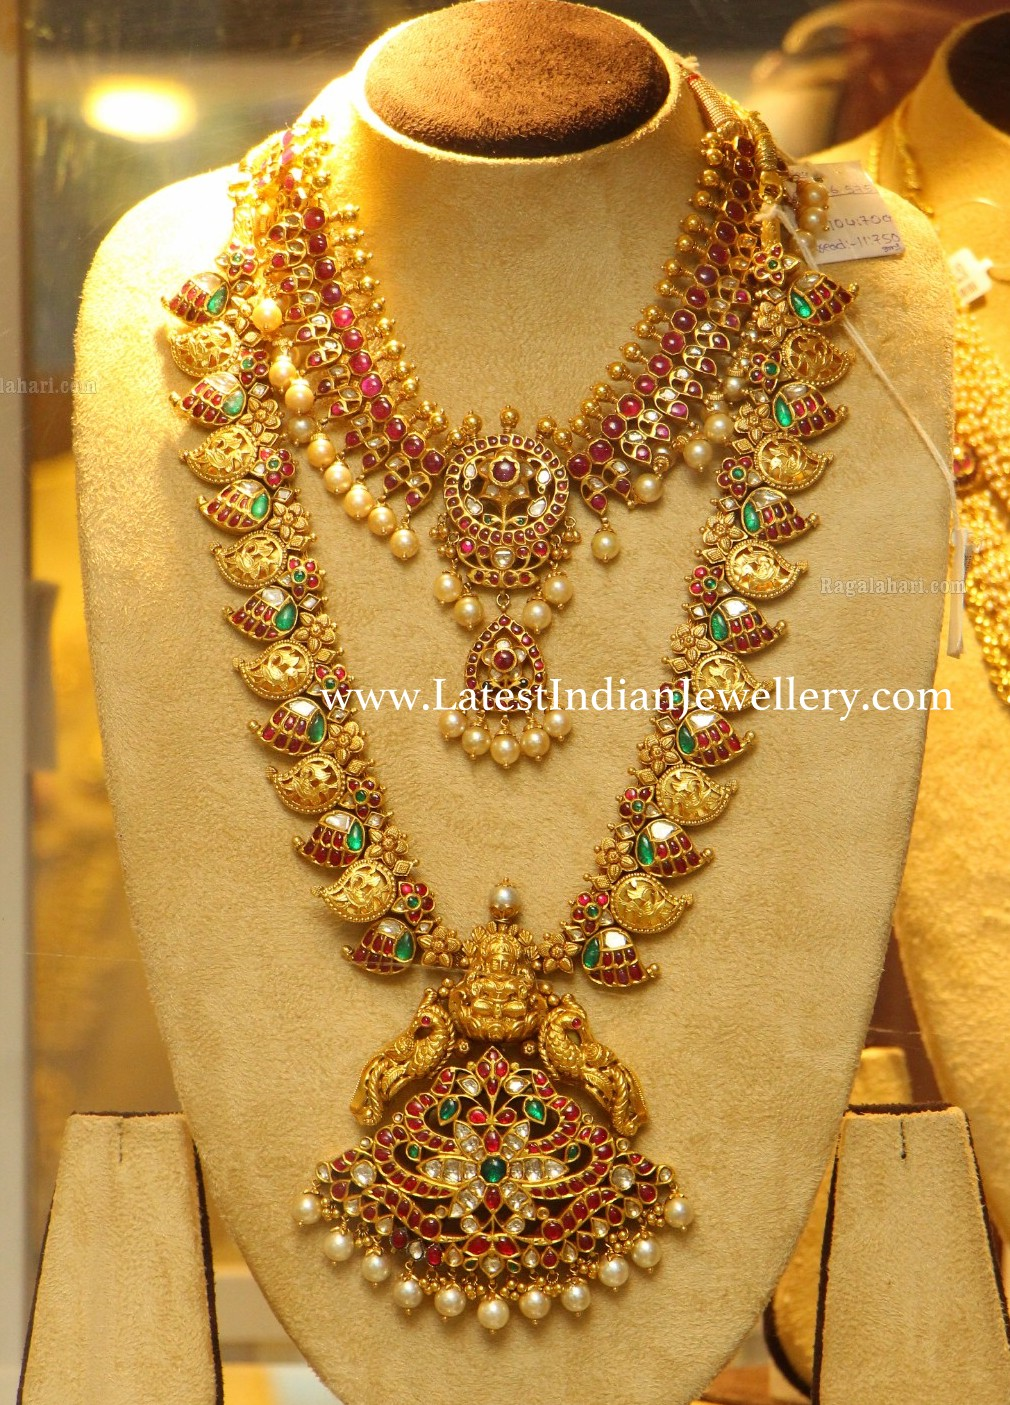 kundan necklace and mango haram